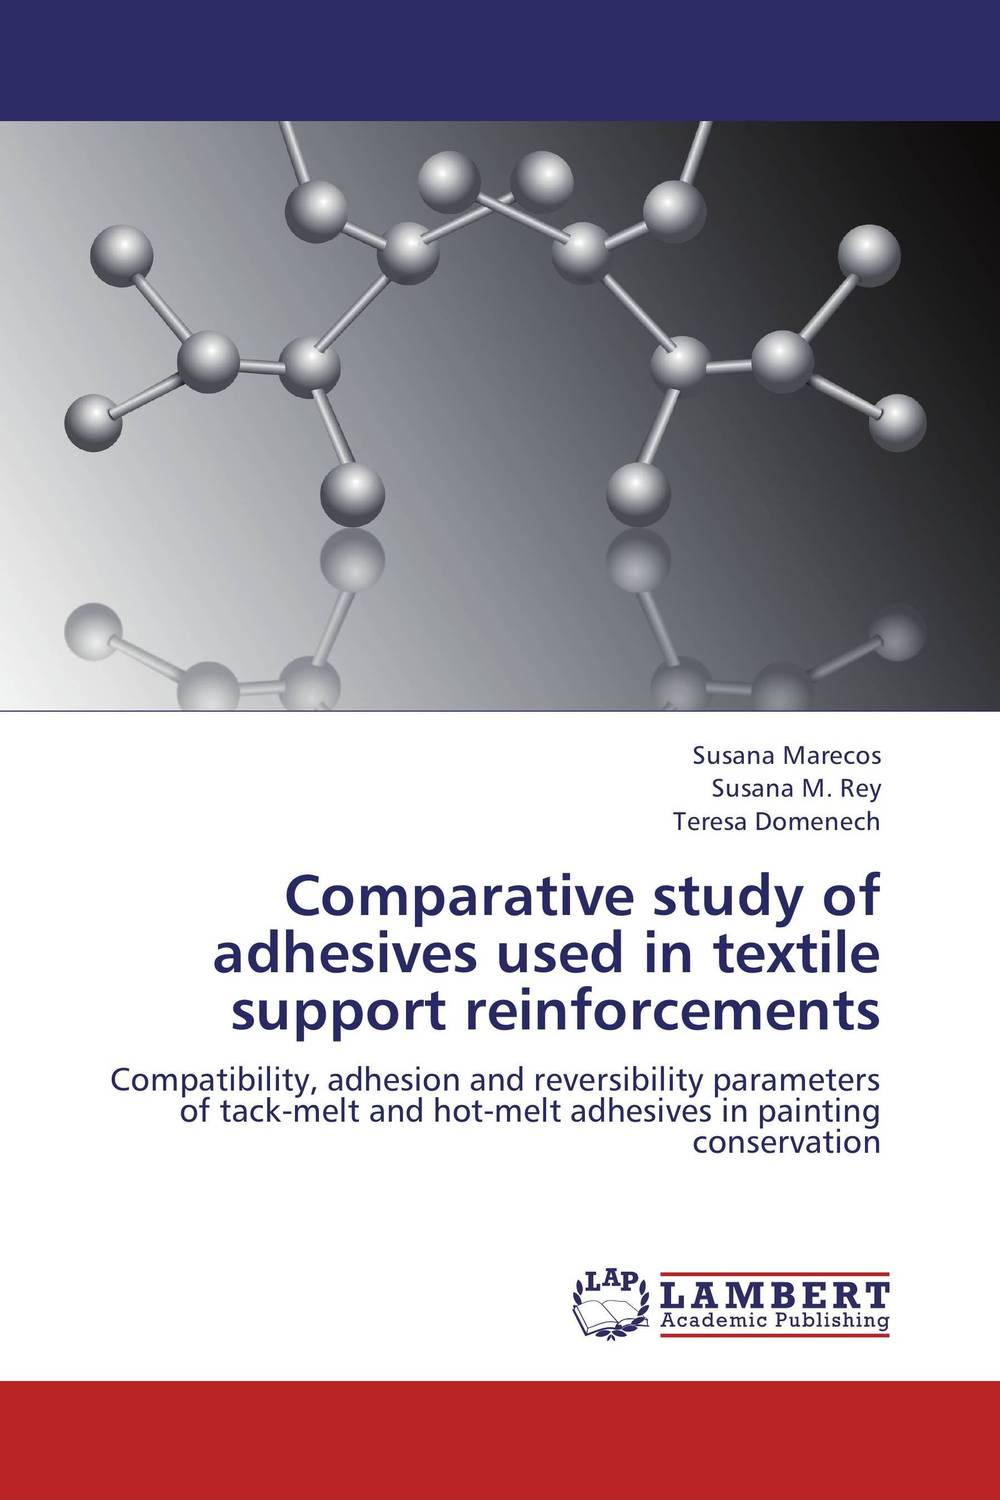 Comparative study of adhesives used in textile support reinforcements